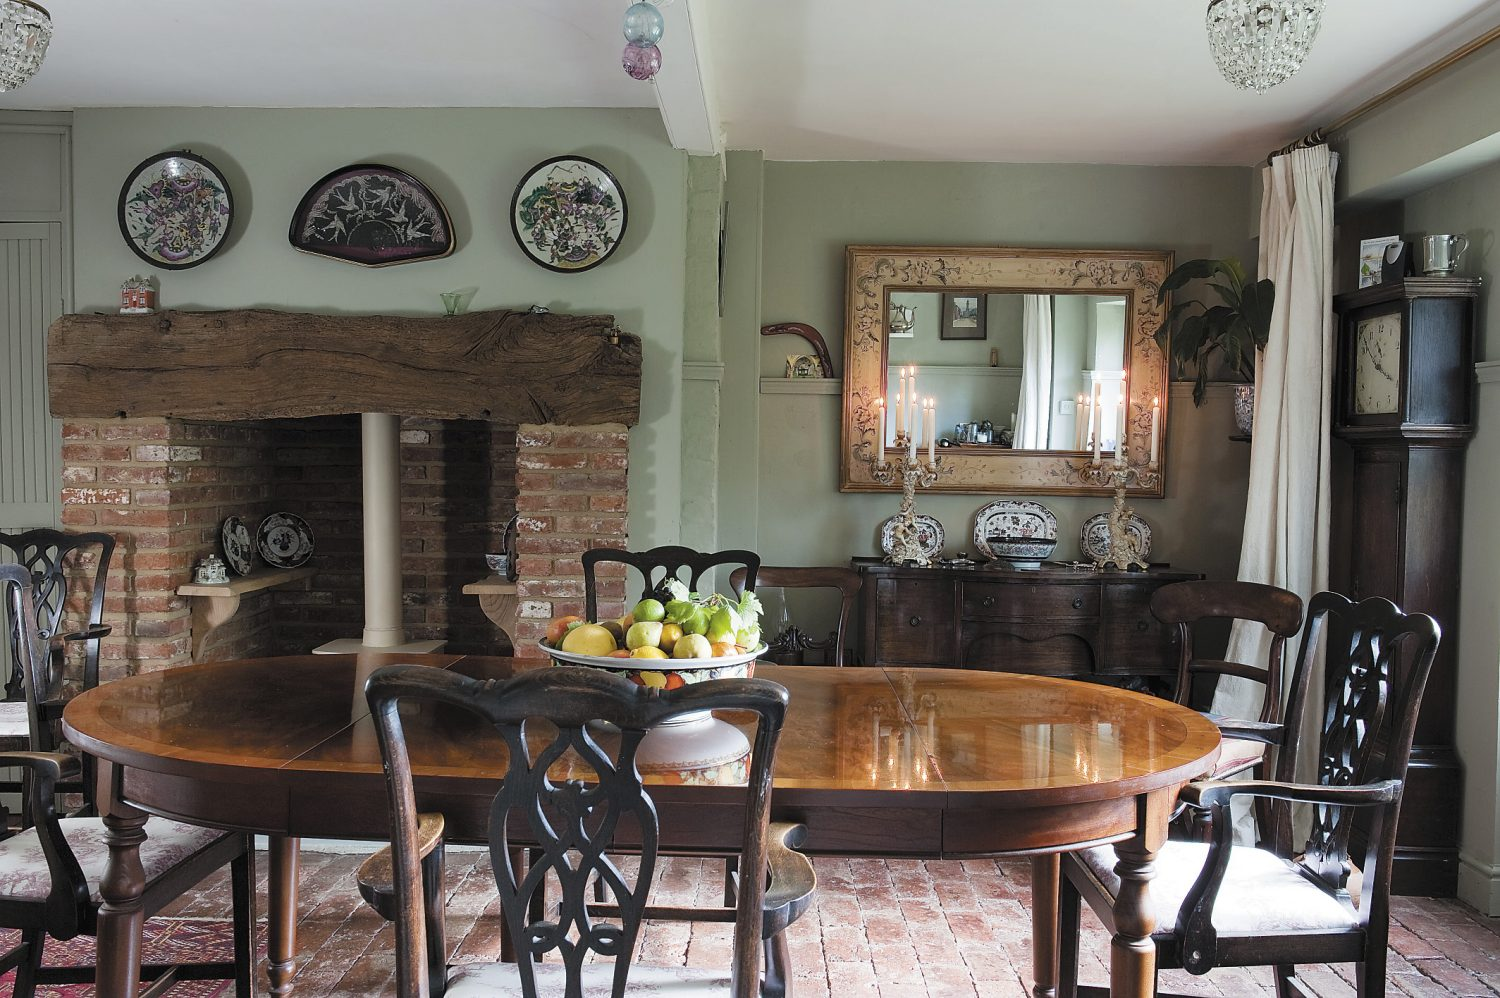 the inglenook in the dining room previously housed an ugly and noisy boiler, now replaced in a more discreet position; with its French doors leading straight out into the garden, the dining room is a bright and sunny room where guests enjoy their breakfast